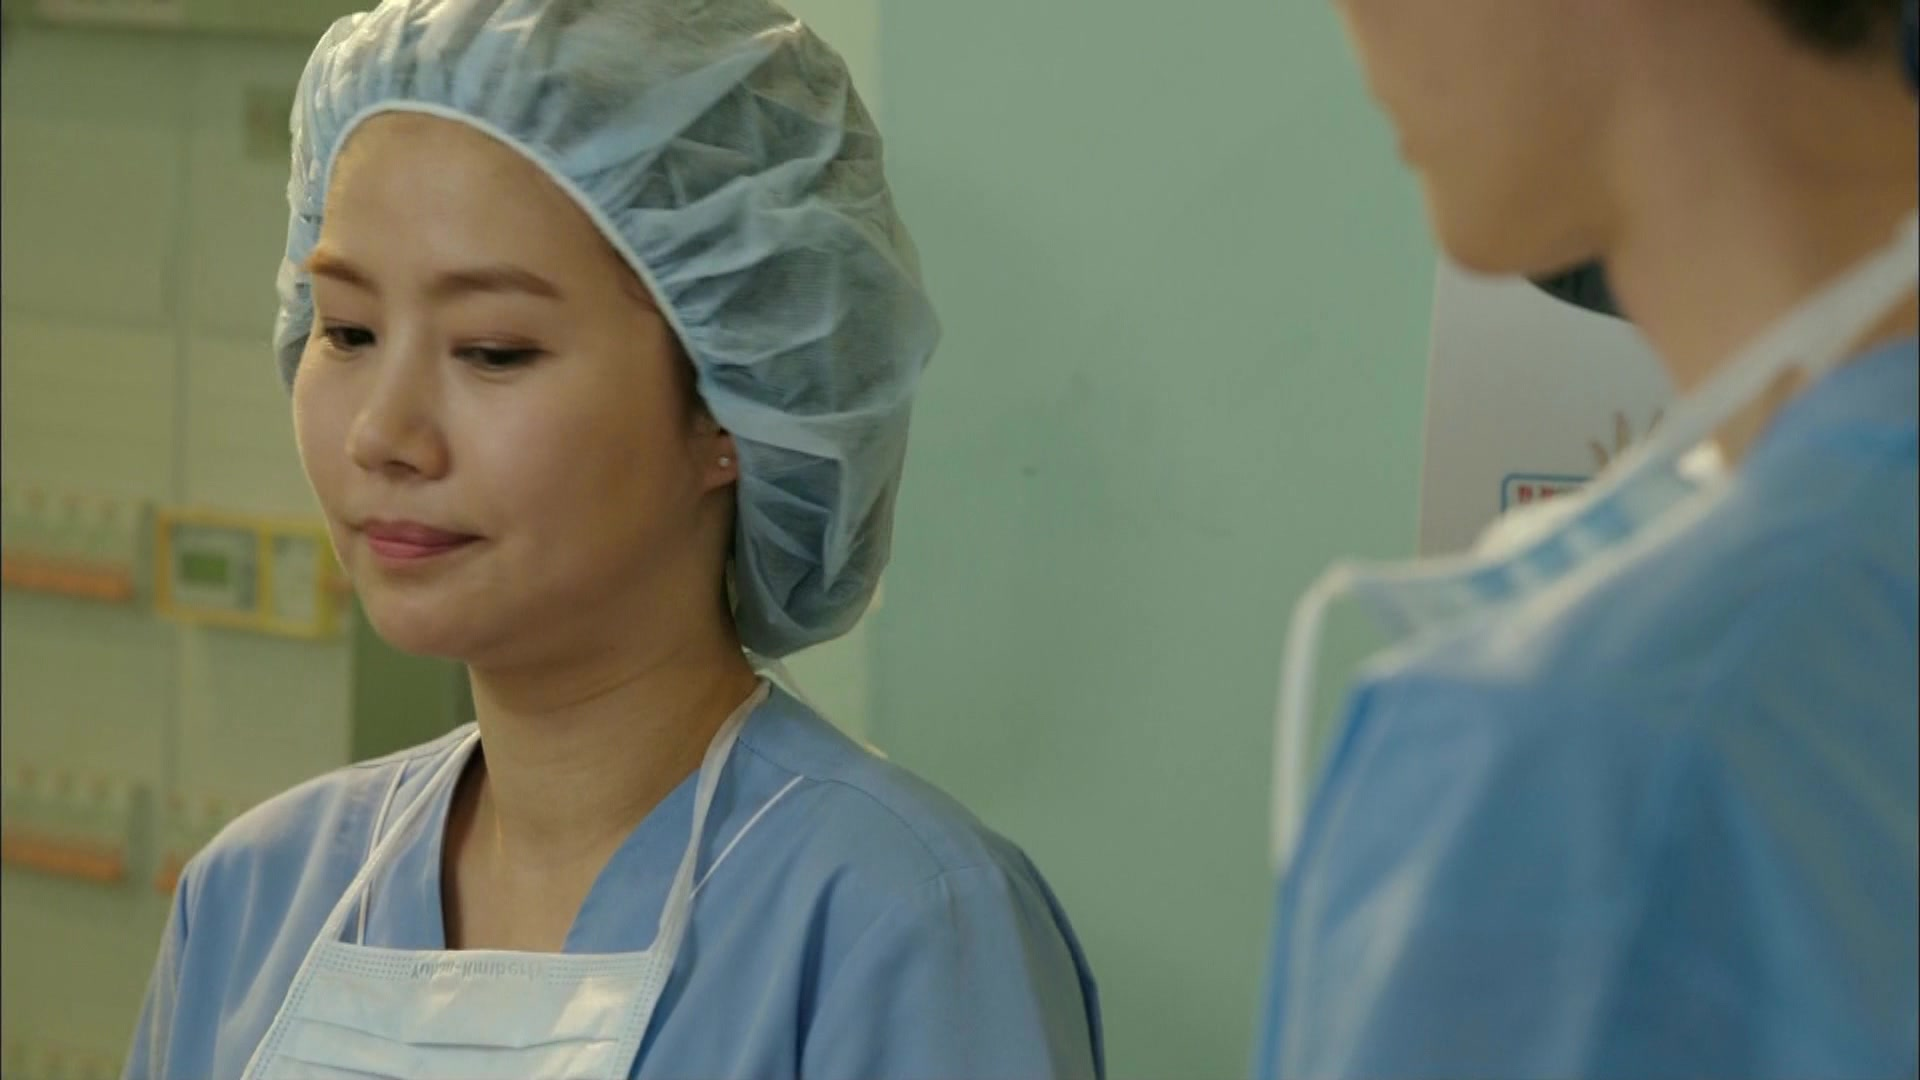 Doctor Stranger Episode 18